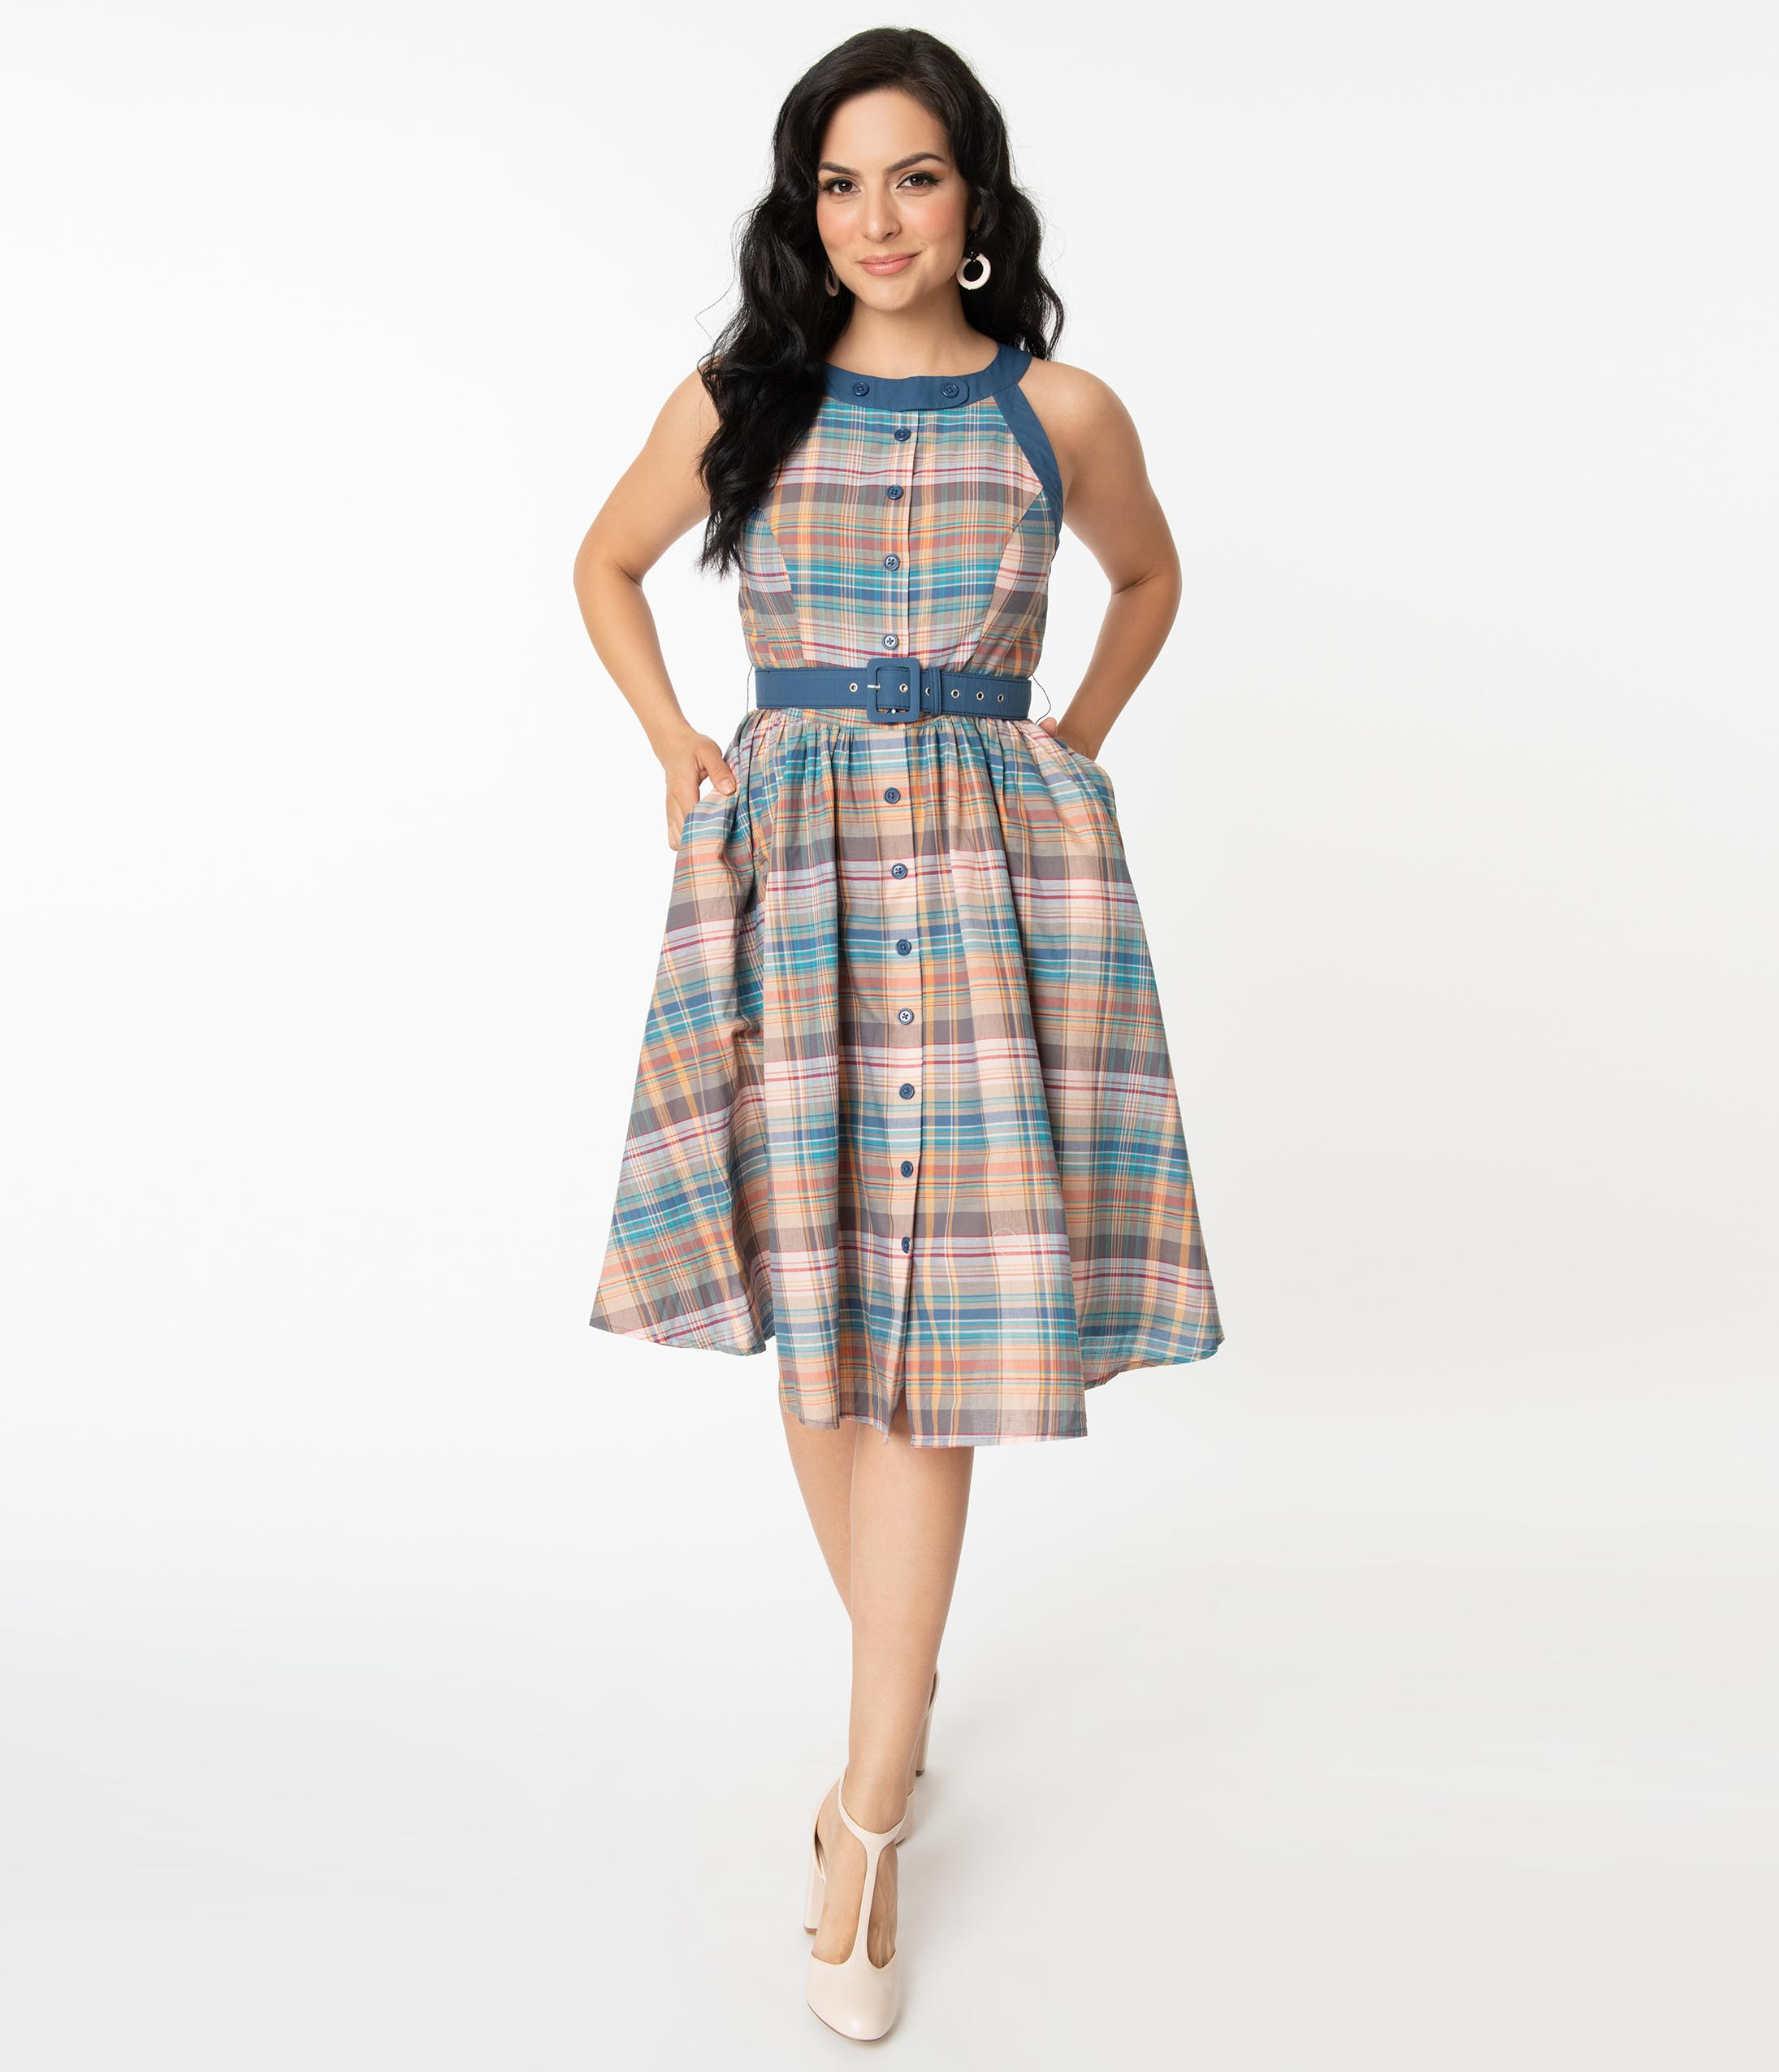 Pin Up Girl Costumes | Pin Up Costumes Unique Vintage Multicolored Plaid Maxine Swing Dress $98.00 AT vintagedancer.com